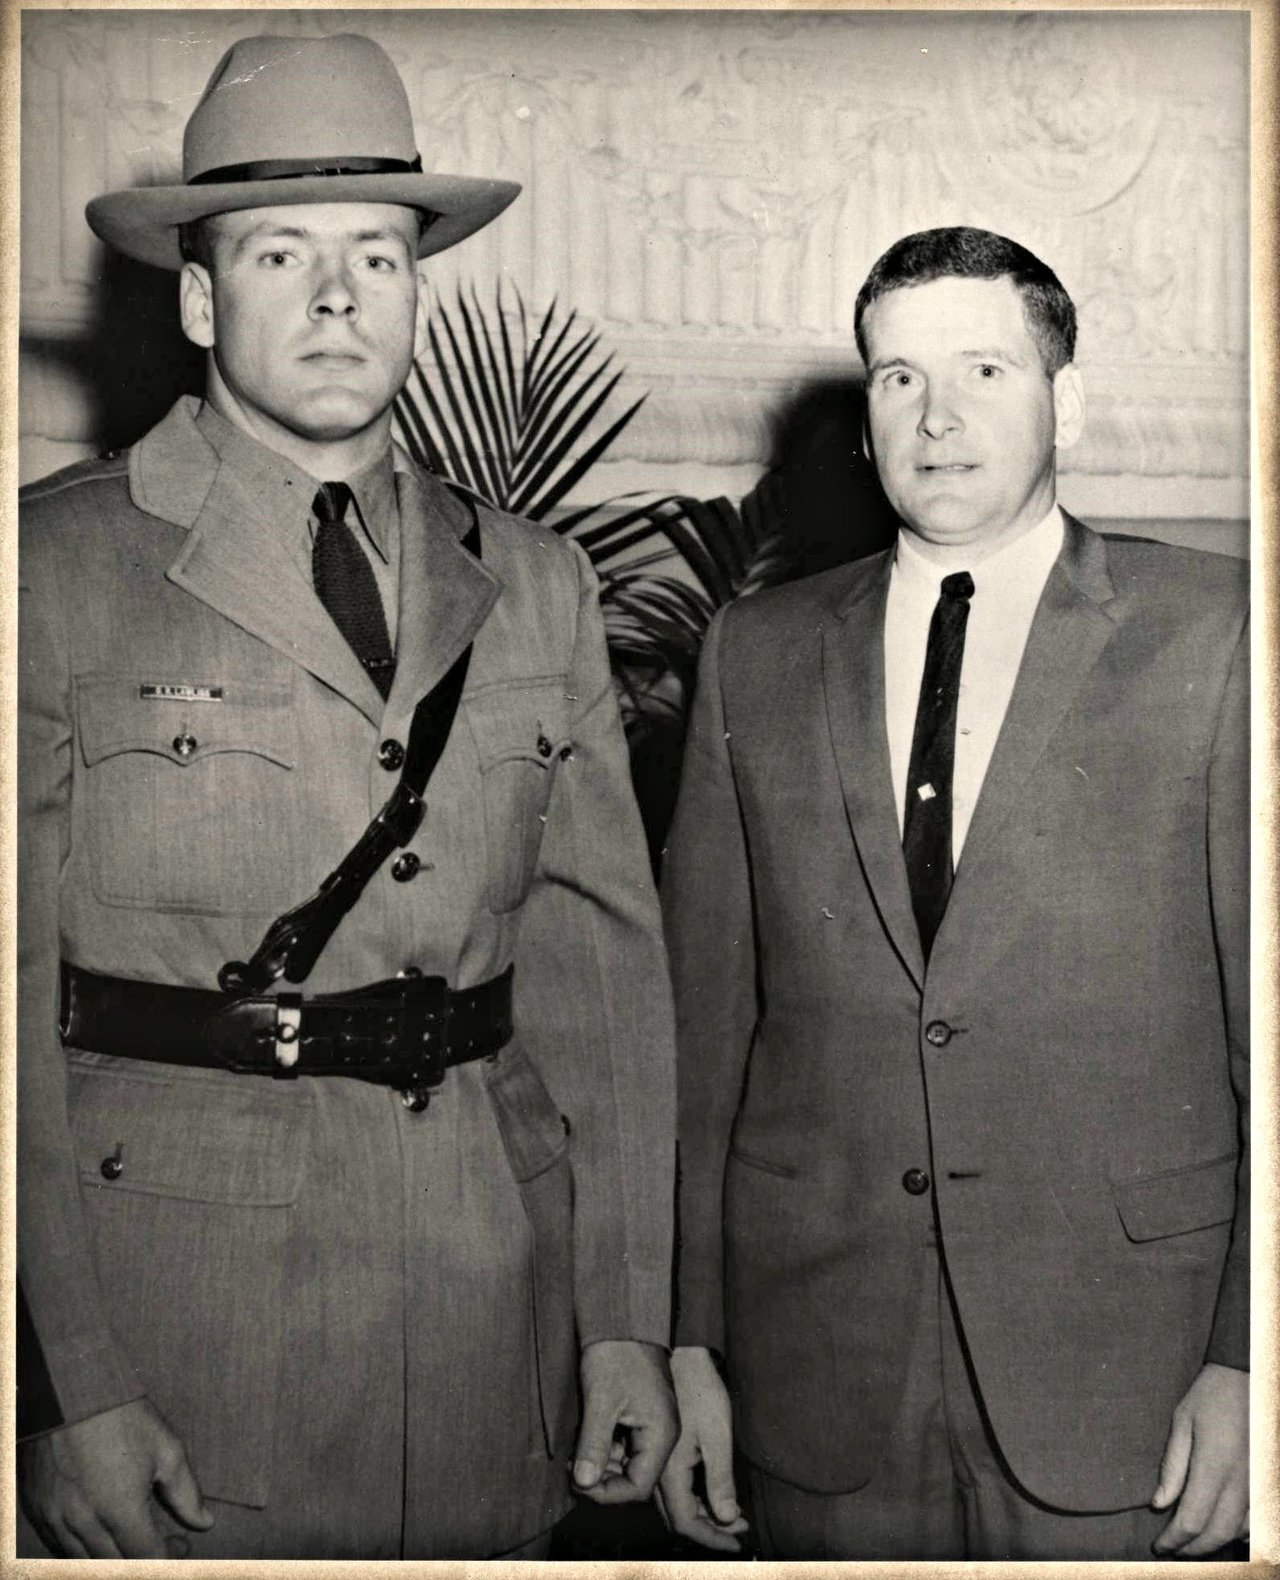 Brothers on the job: Tpr. Damus Lawliss and Sgt. Jack Lawliss, 1965